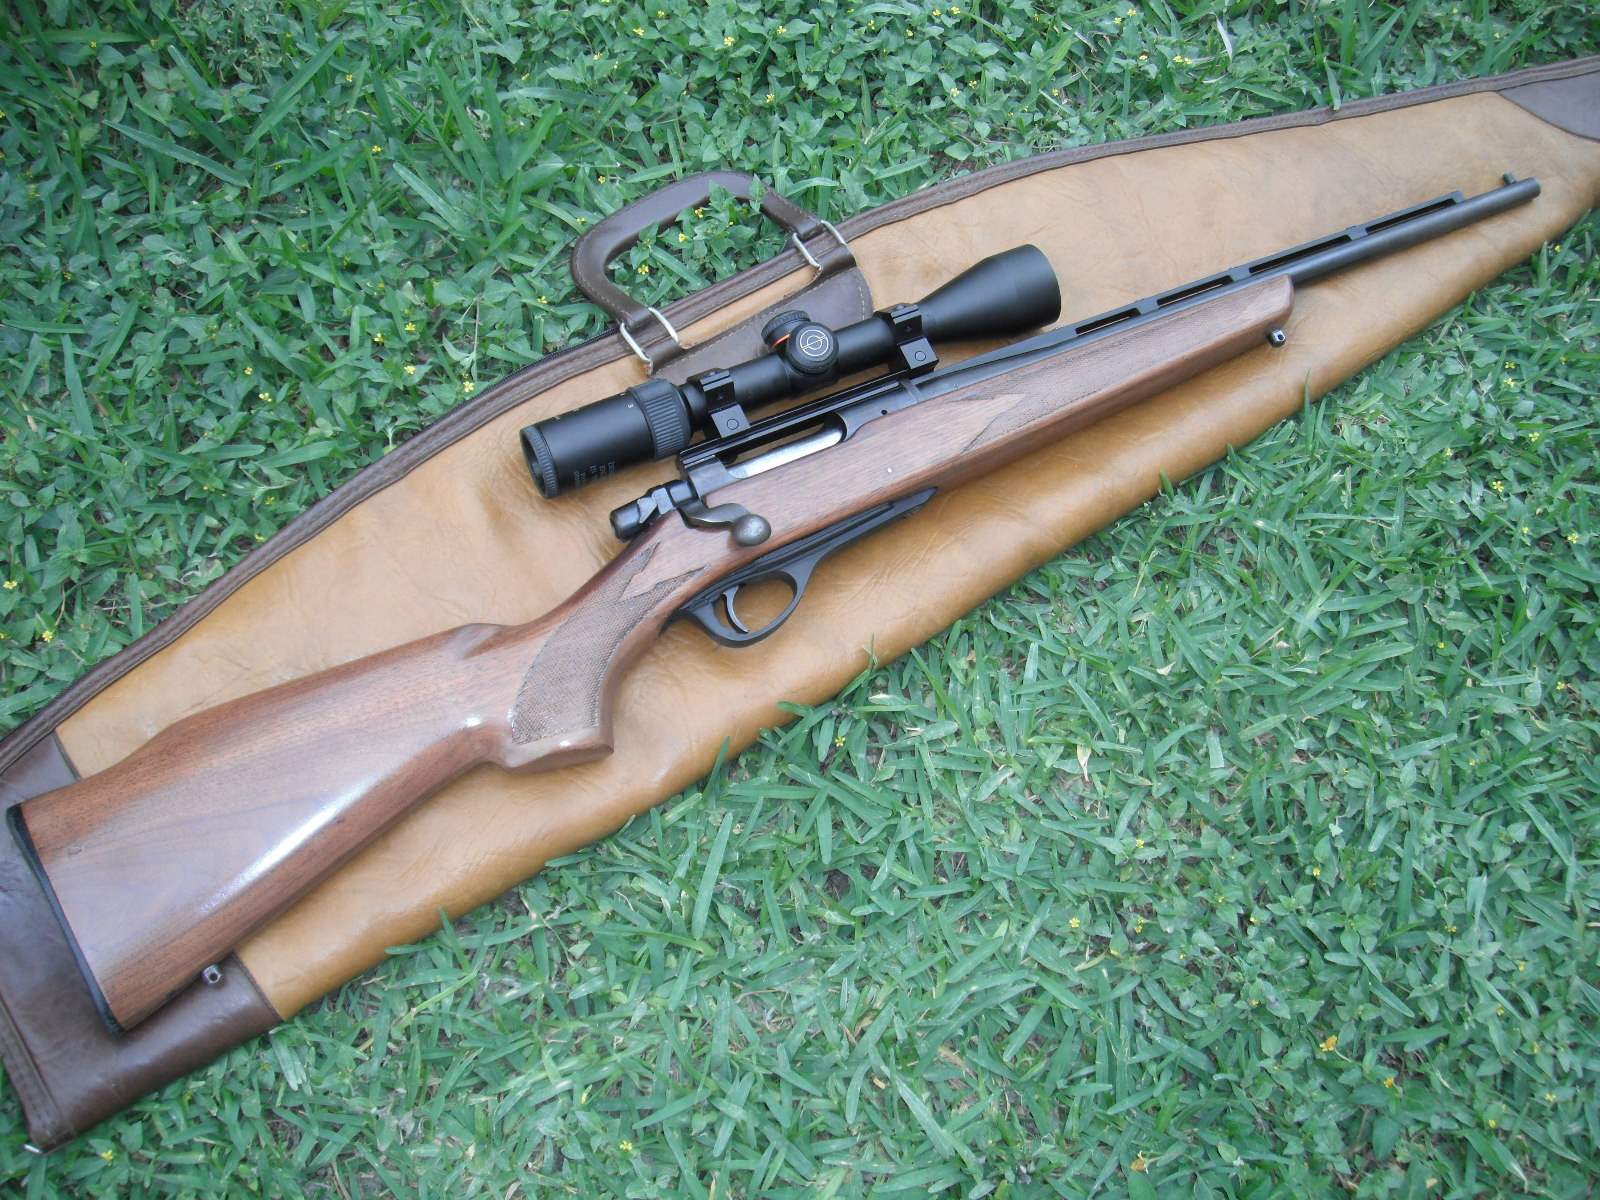 The original Remington 600 rifle on which the XP-100 was based. (Picture courtesy mexicoarmado.com).